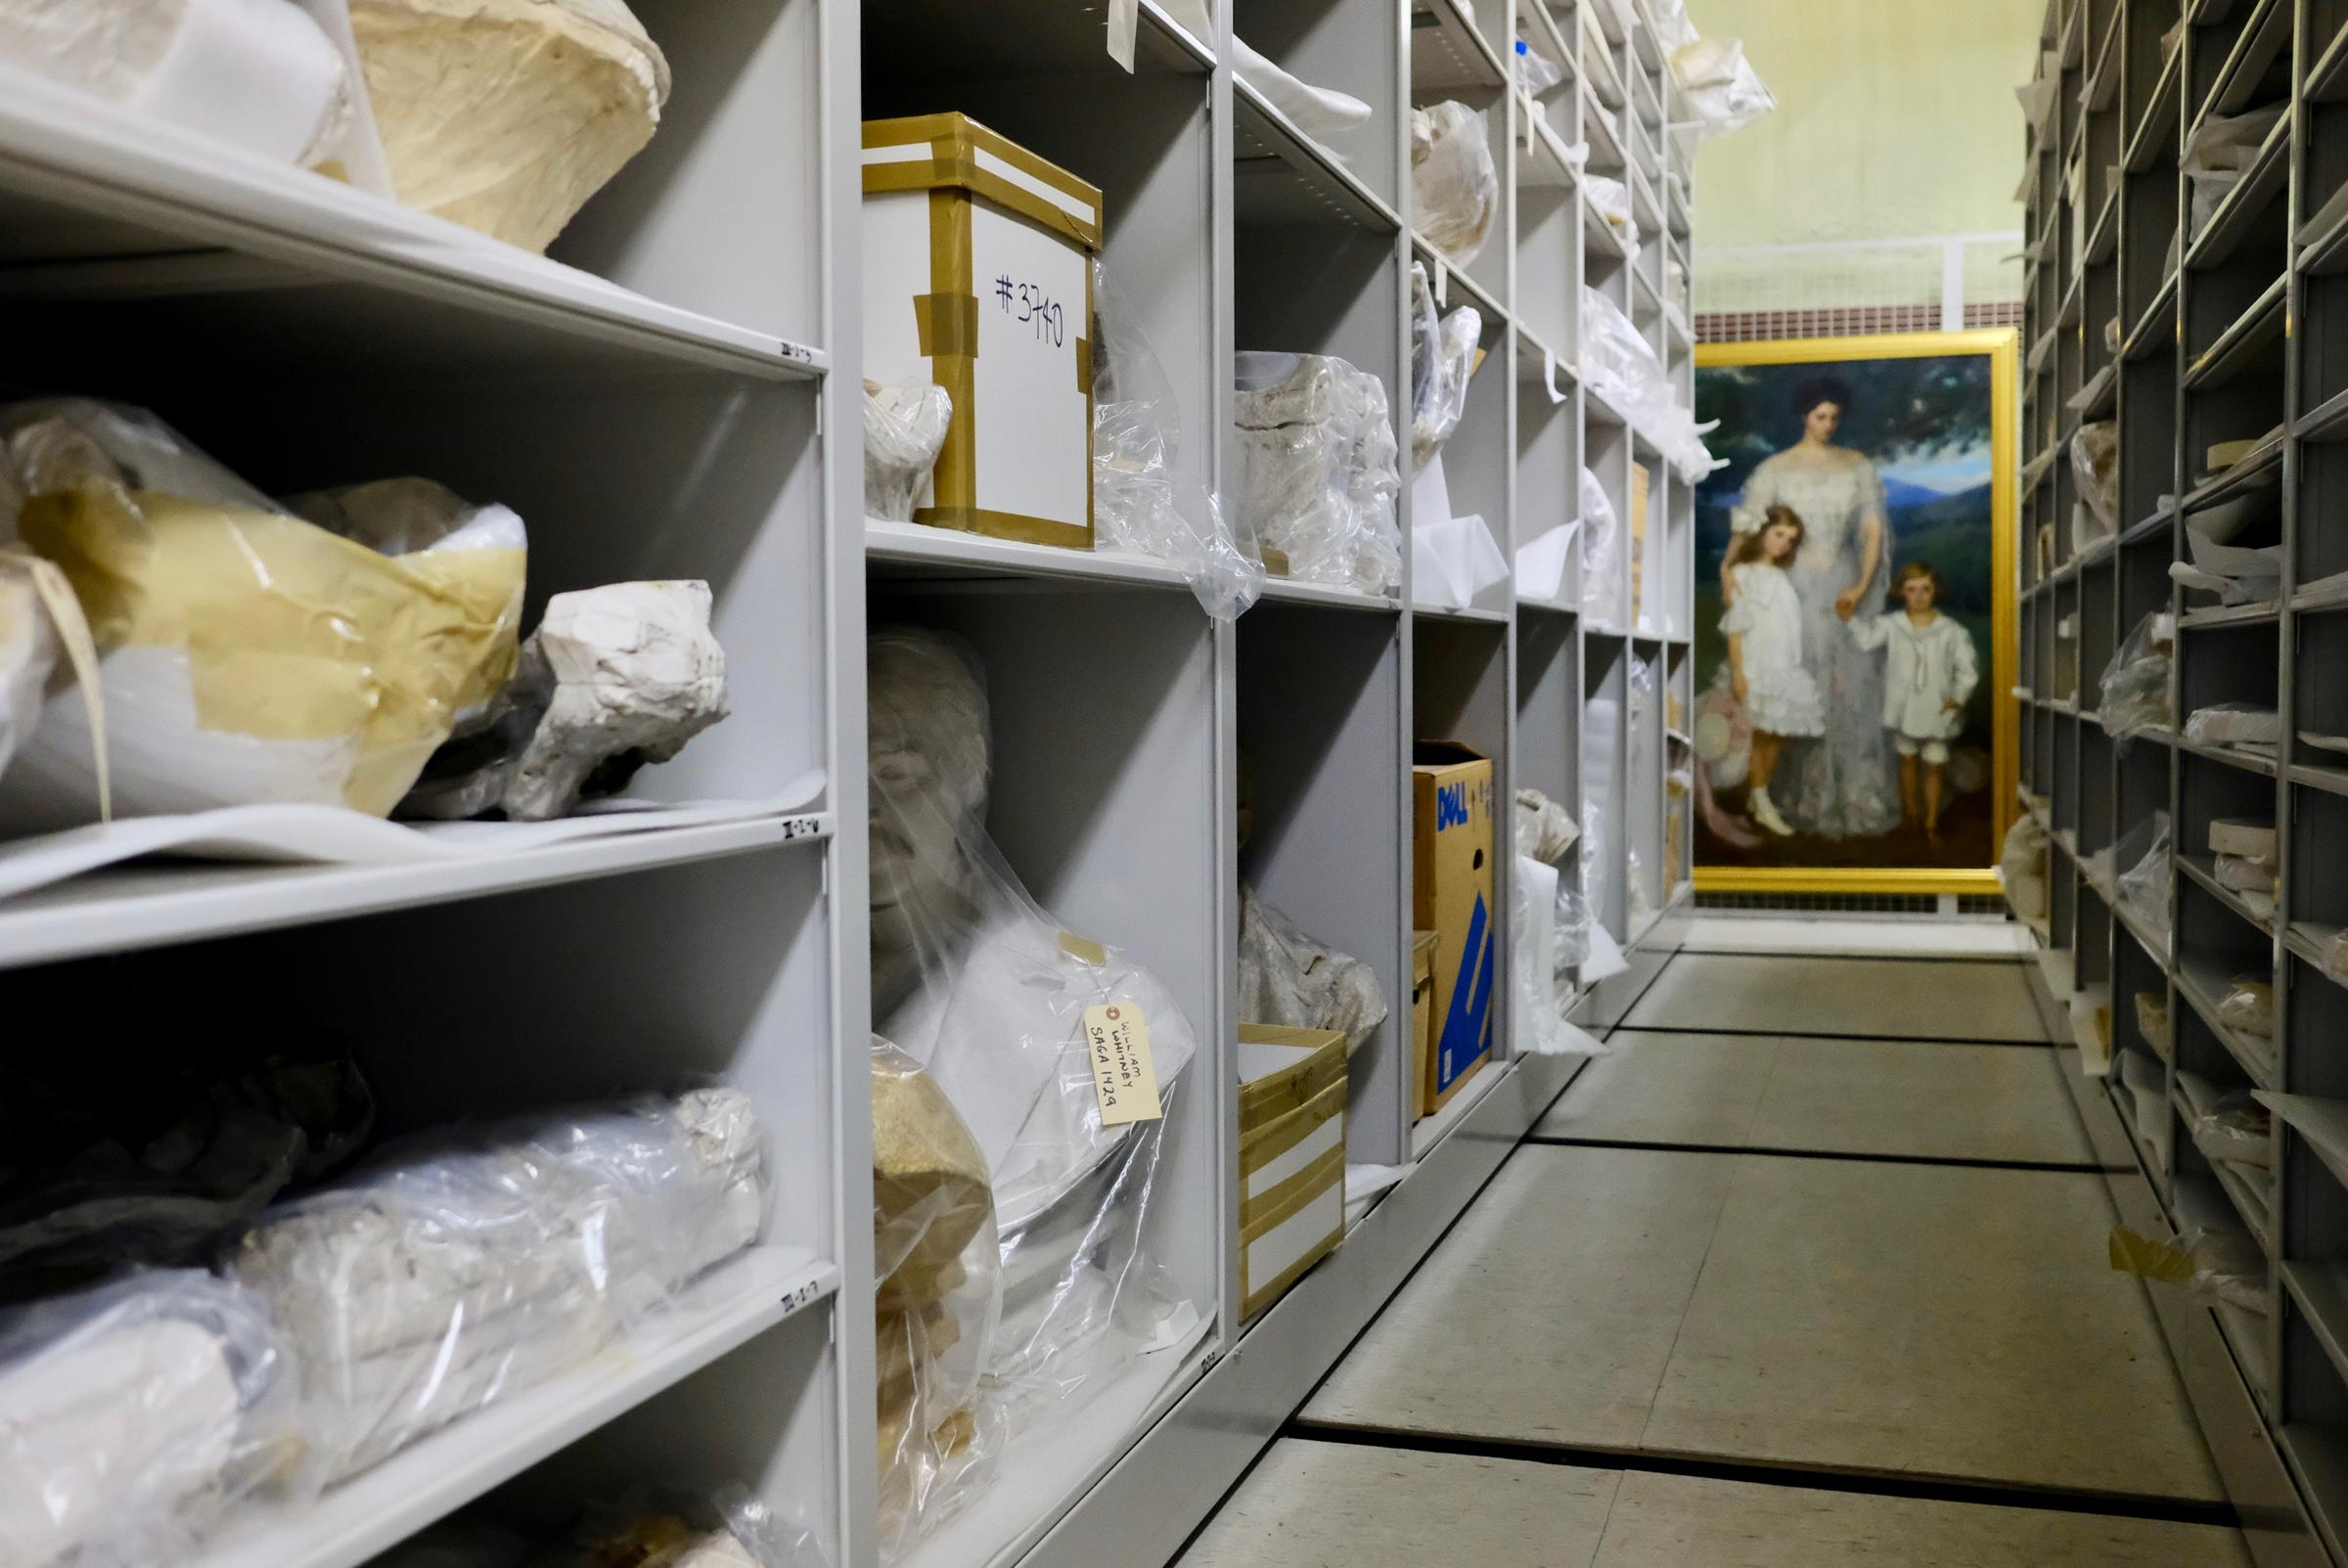 Sculptural molds and other artifacts sit in a storage room at Saint-Gaudens National Historic Site in Cornish, N.H. The artifacts are being closely reexamined for the first time in decades — February 2018